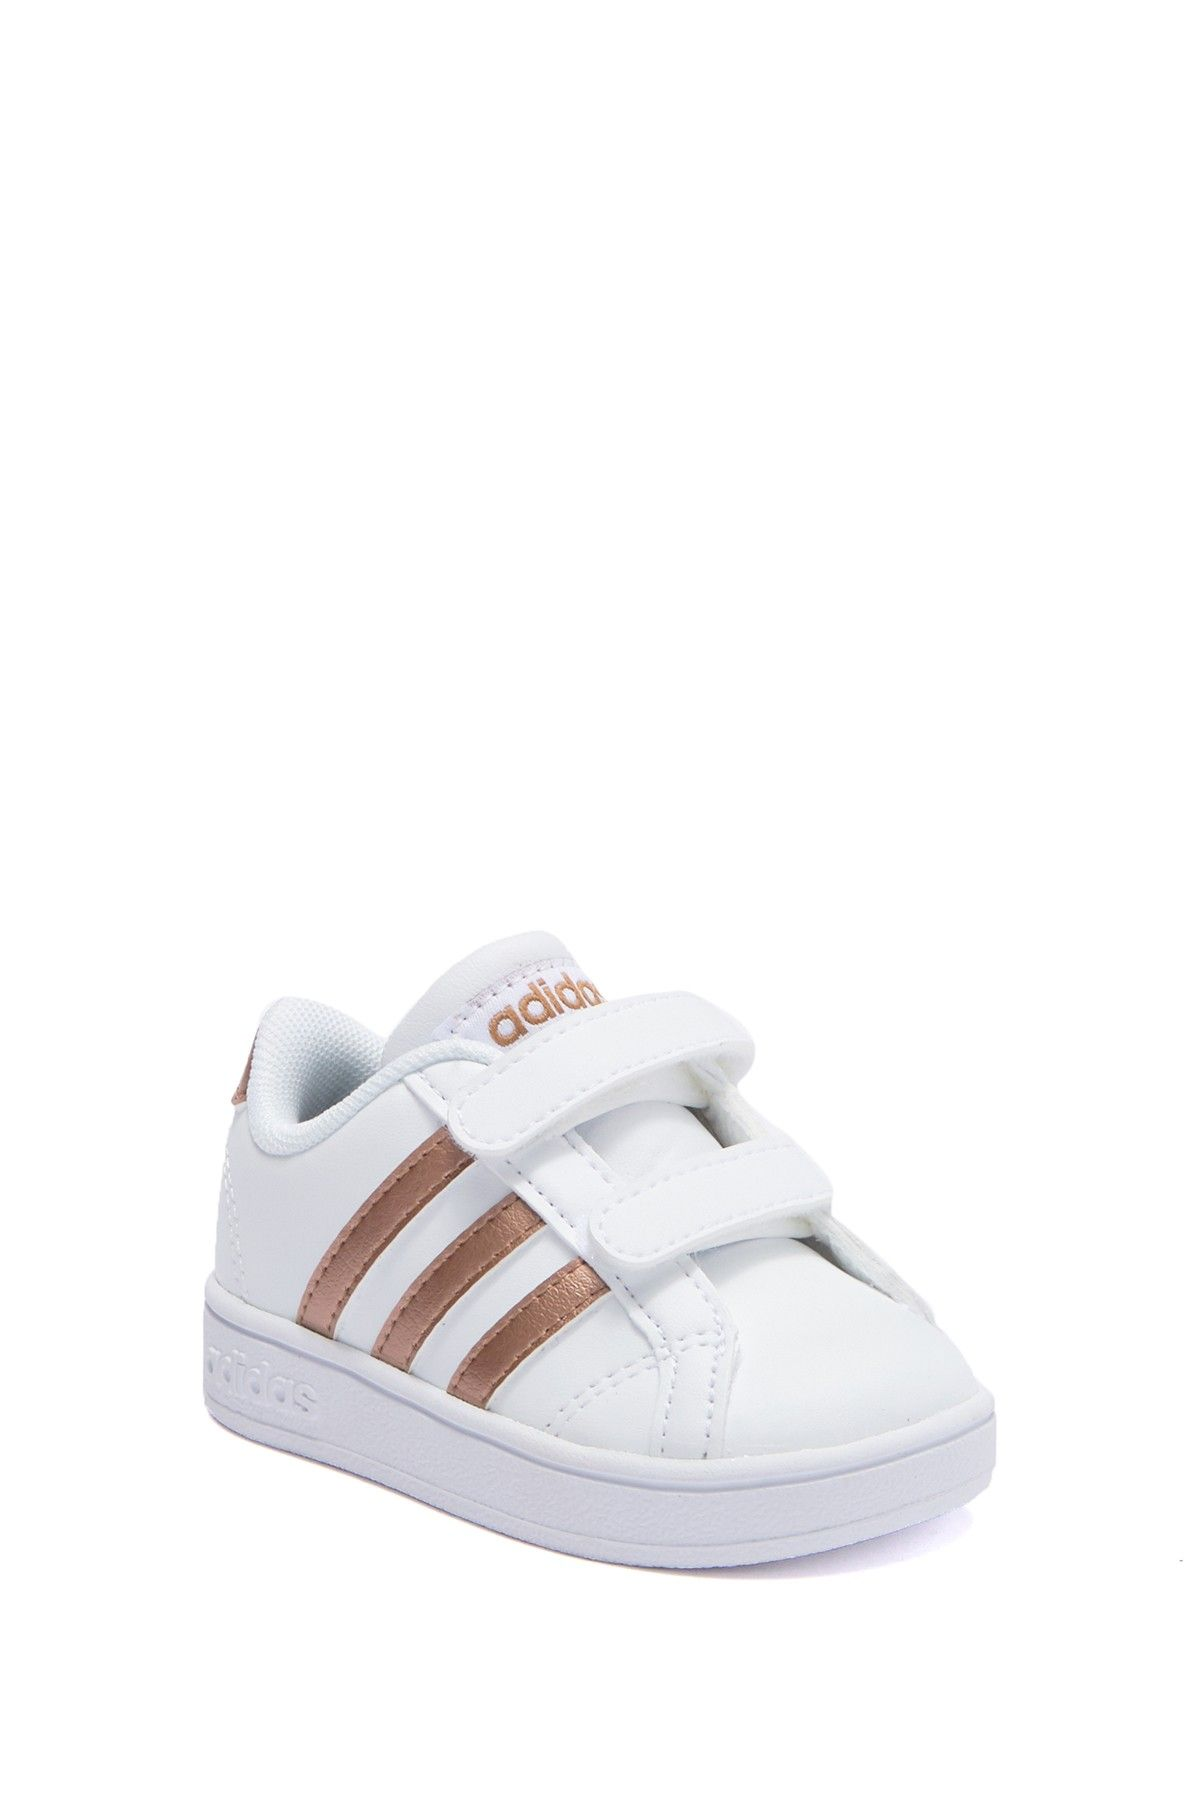 adidas | Baseline CMF Sneaker (Baby & Toddler | Cute baby